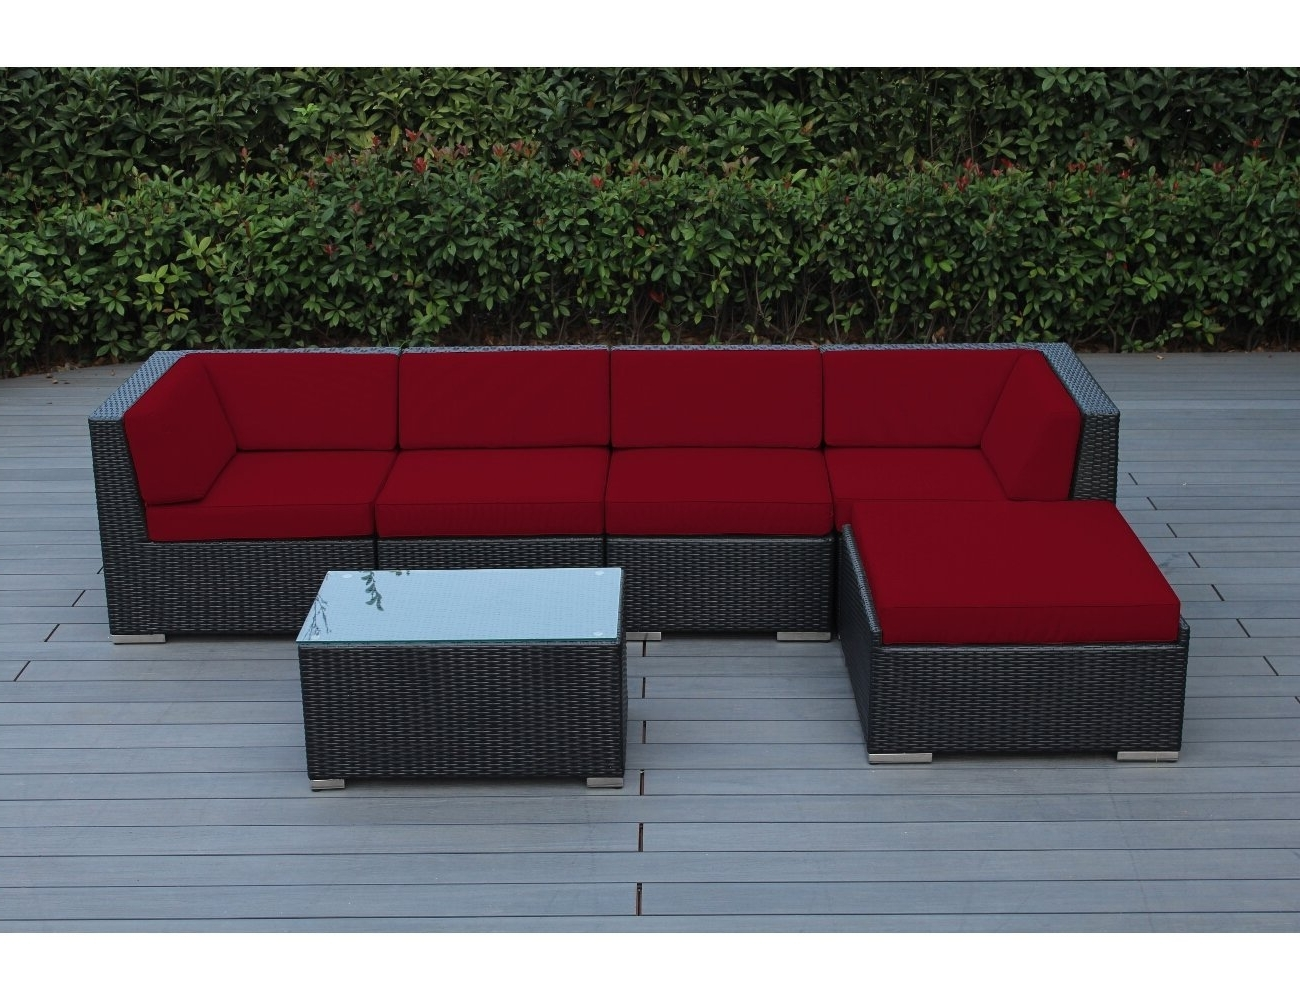 Red Patio Conversation Sets Within Best And Newest Patio Dining Sets Furniture The Home Depot (View 8 of 15)